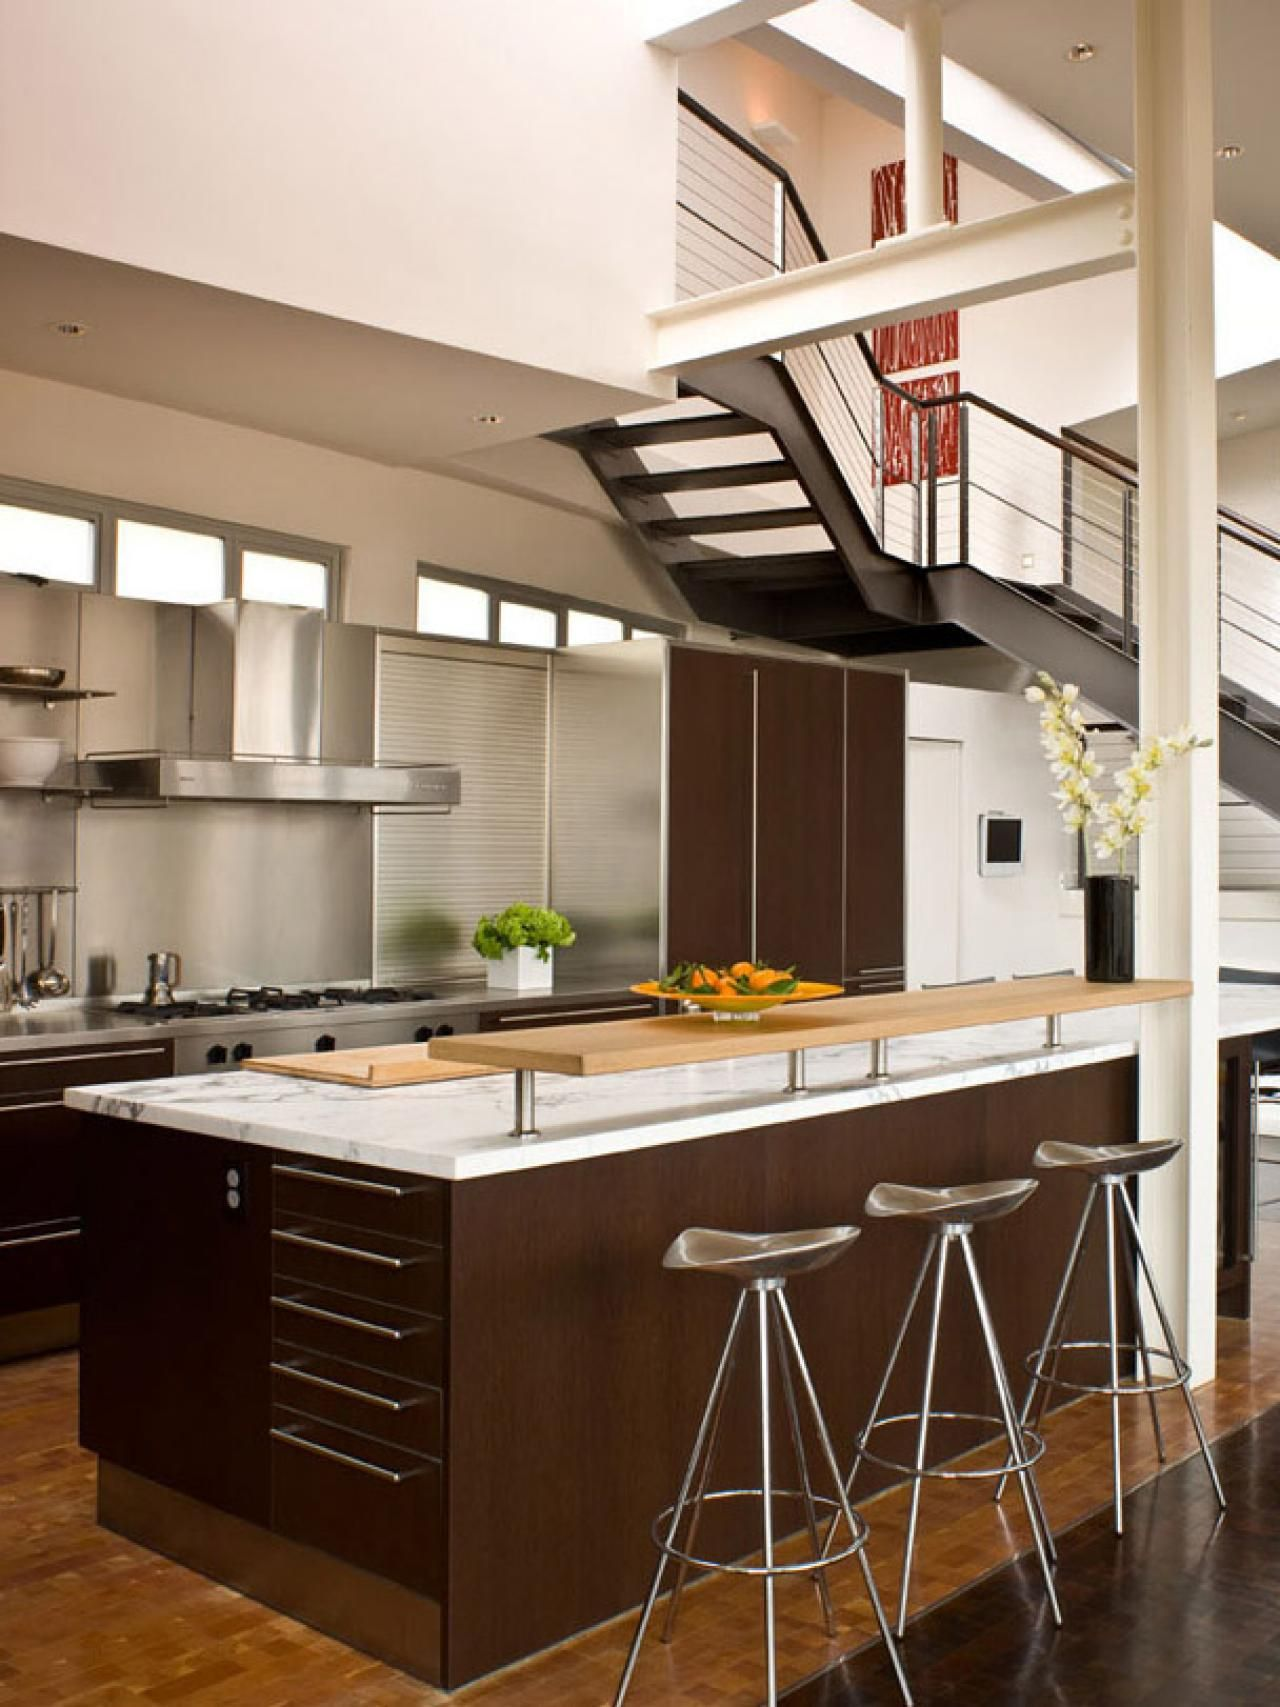 Pictures Of Small Kitchen Design Ideas From  Hgtv Kitchen Design Prepossessing Designing A Kitchen On A Budget Decorating Design